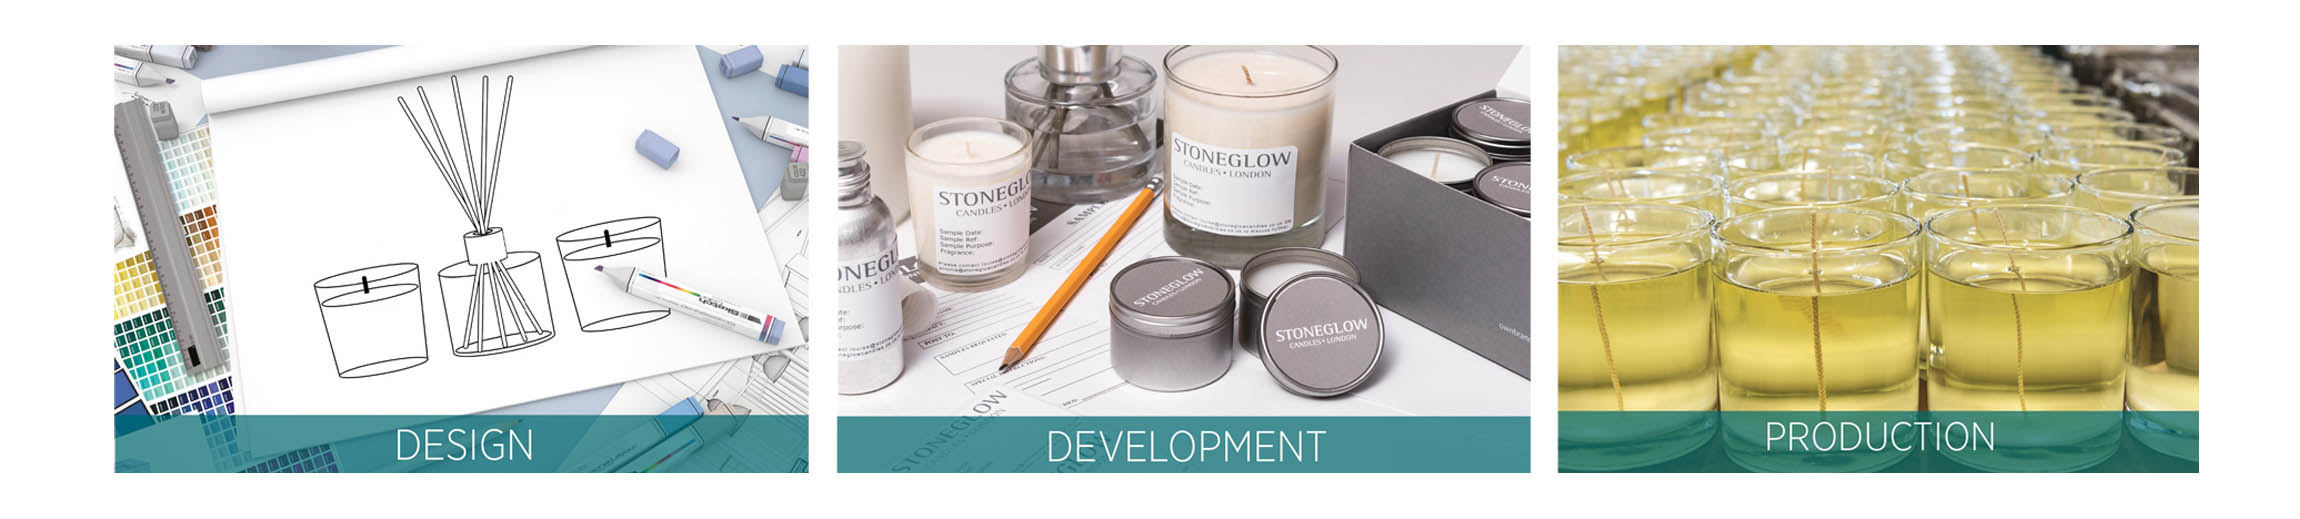 Candle Manufacturers: We Create Own Brand Scented Candles